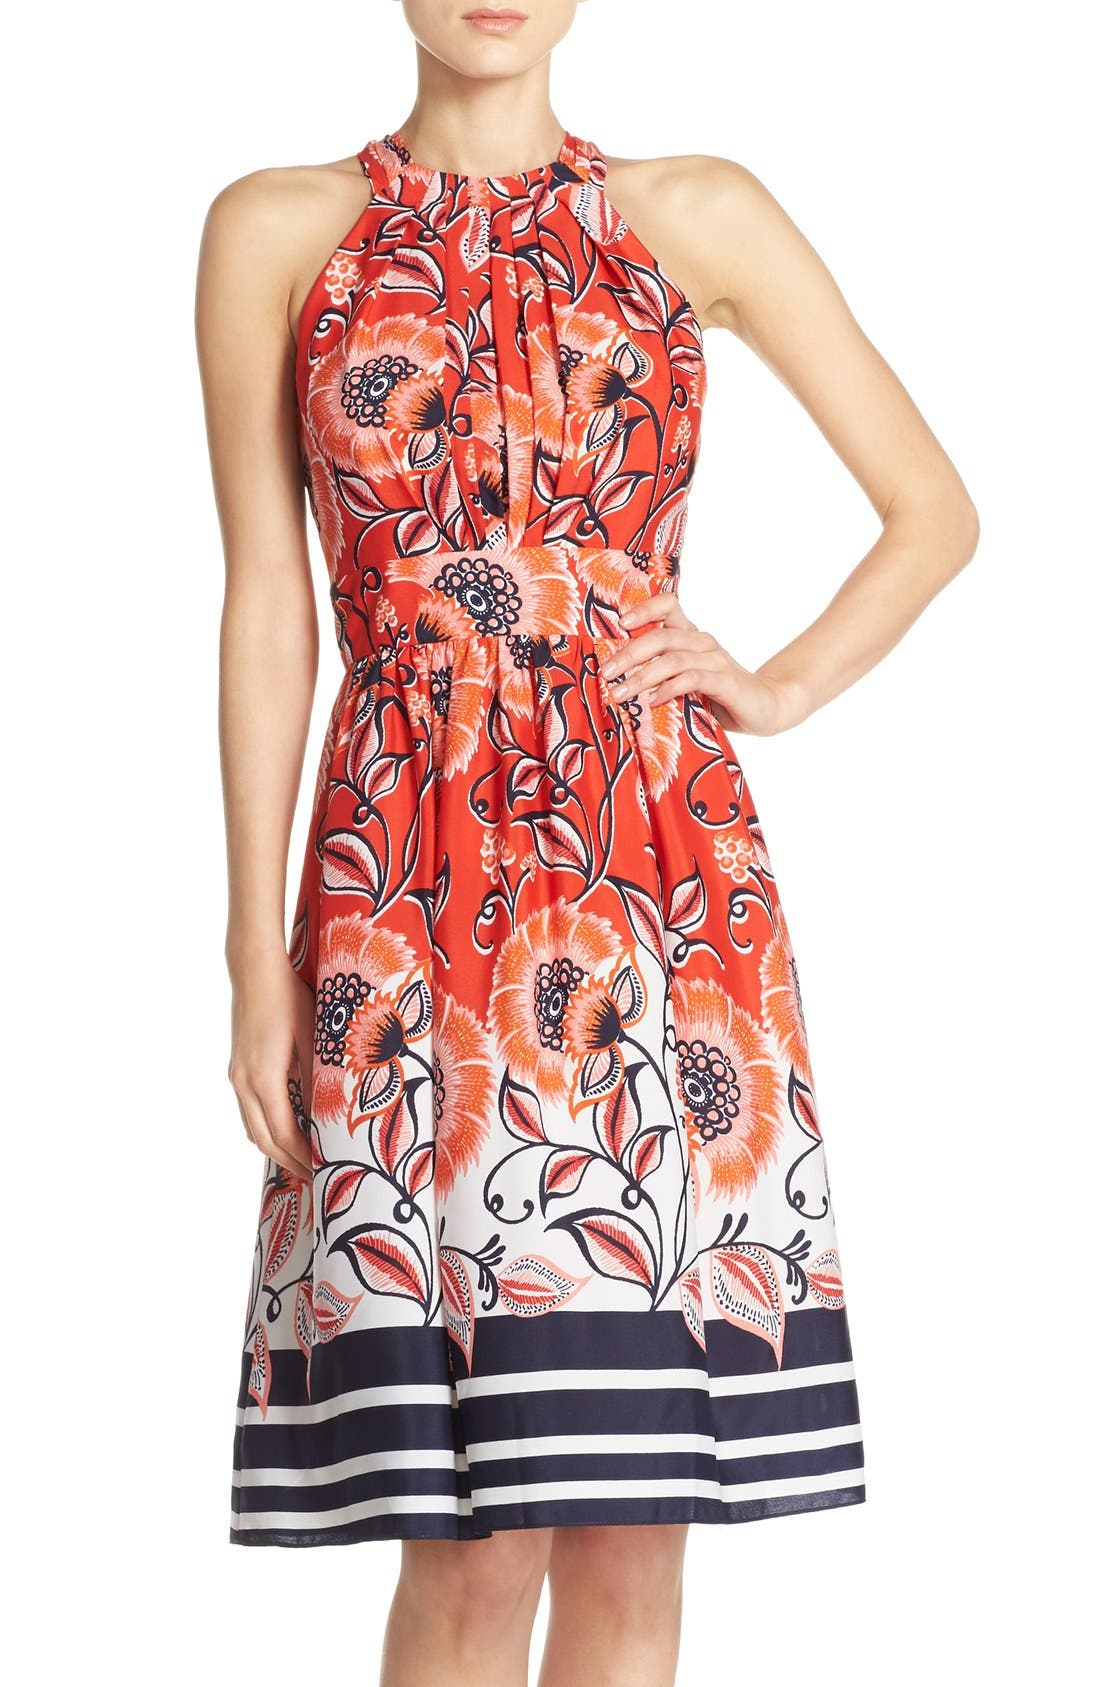 Alternate Image 1 Selected - Eliza J Mixed Print Crêpe de Chine Fit & Flare Dress